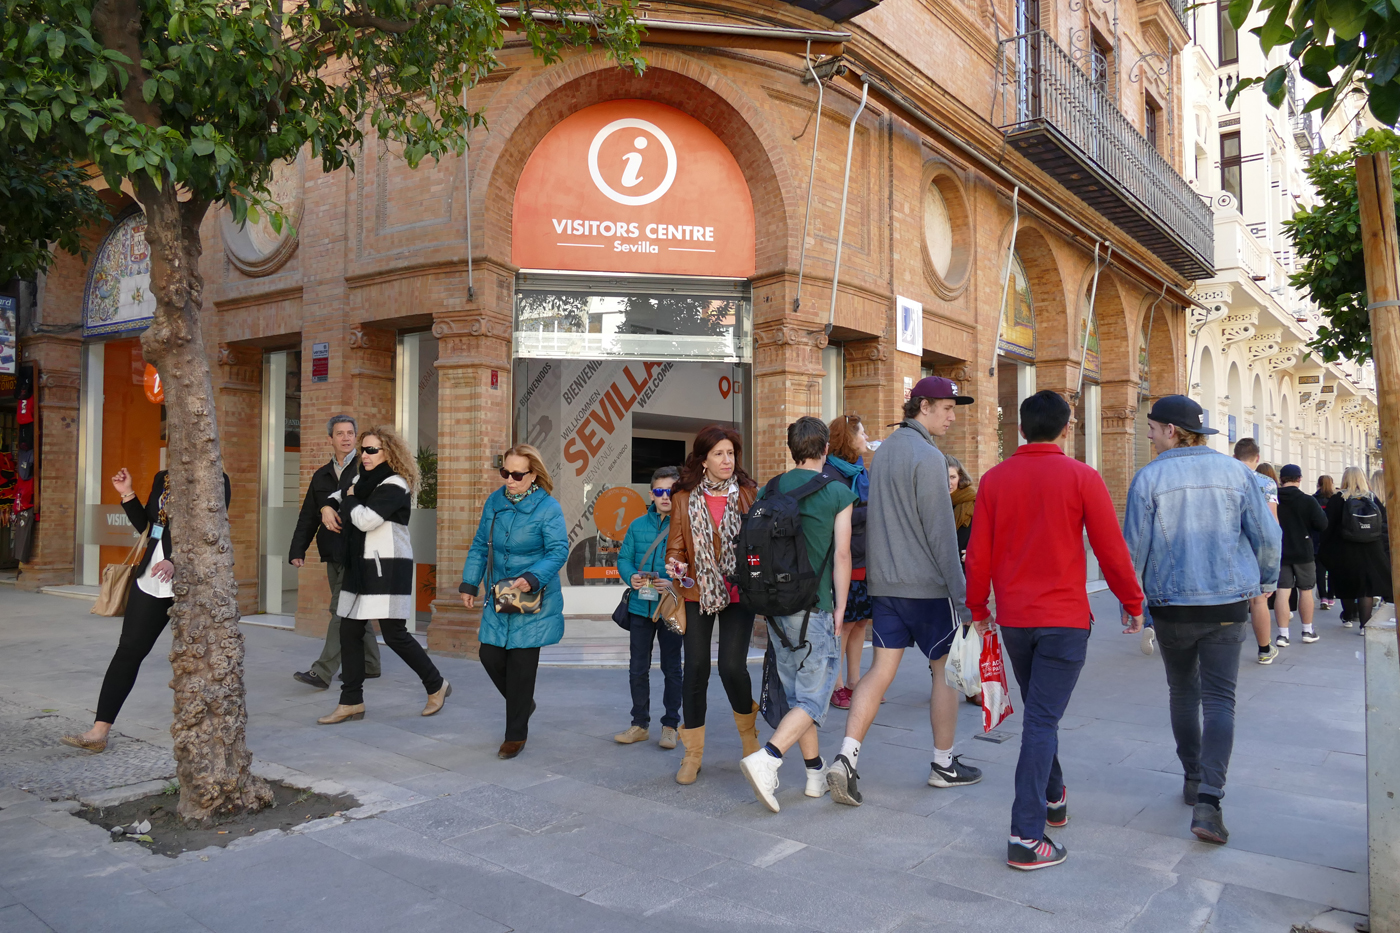 Visitors Centre City Expert Avenida Constitucion Sevilla